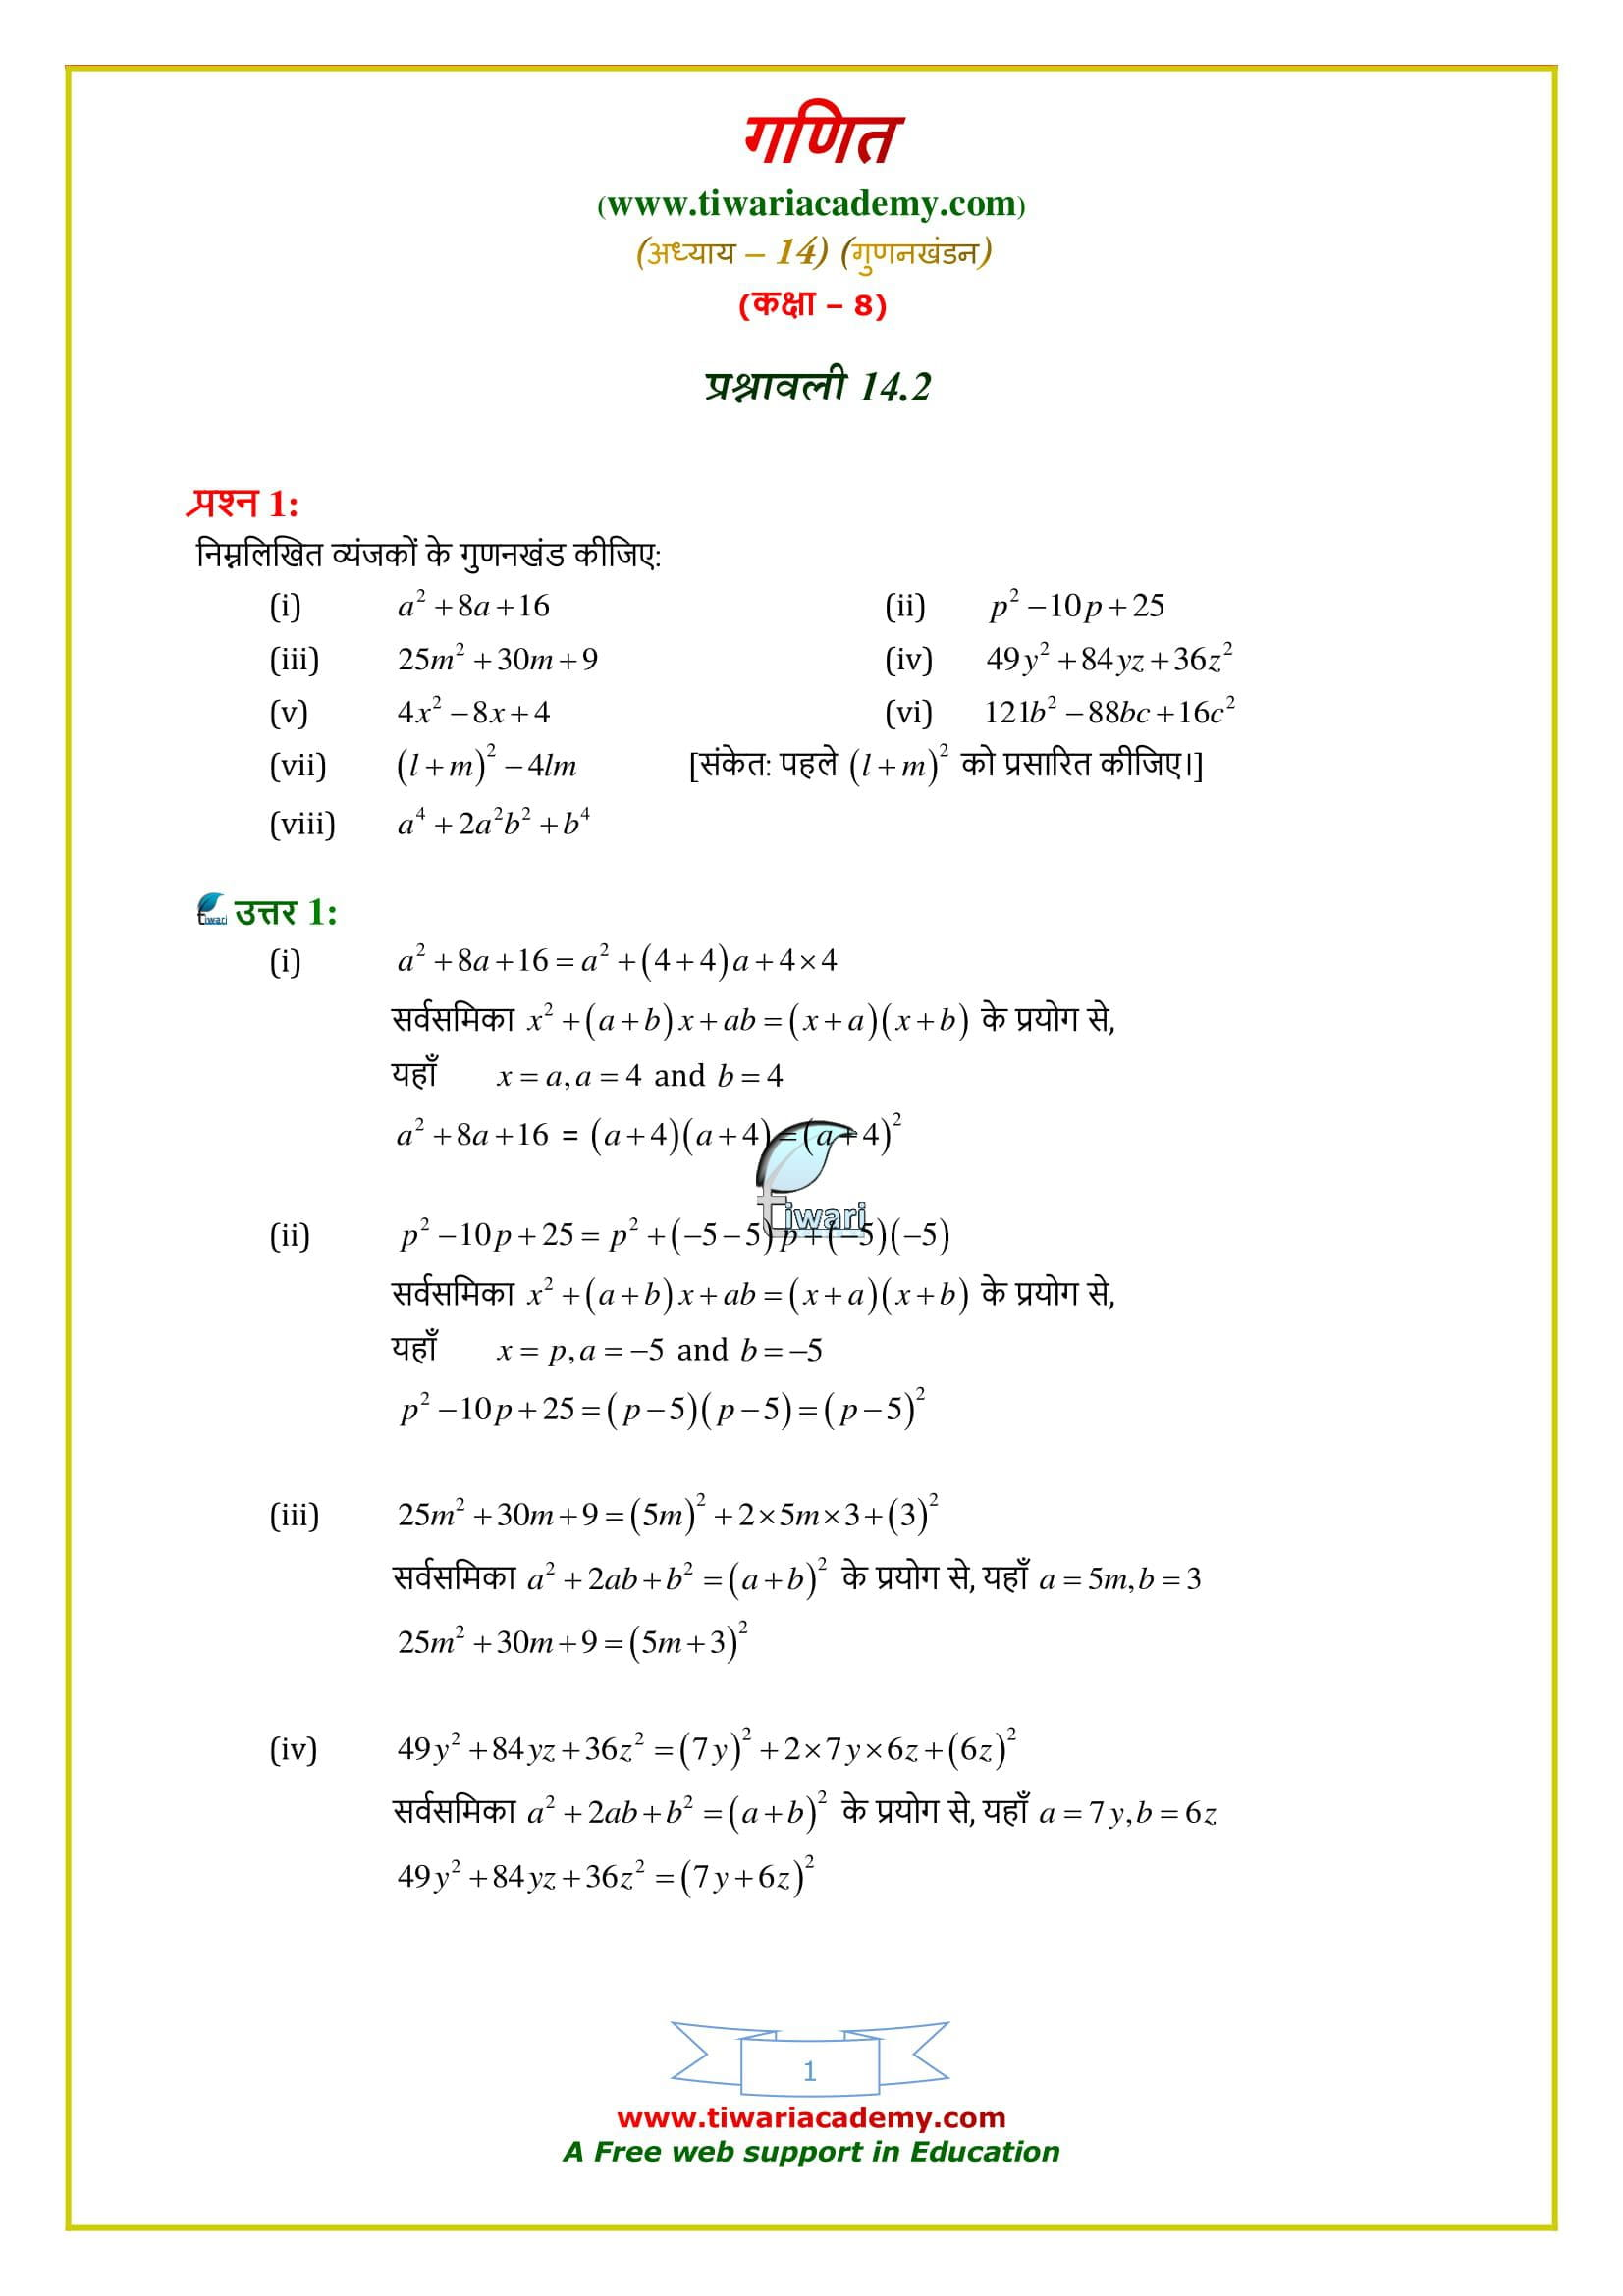 8 Maths Exercise 14.2 solutions in hindi